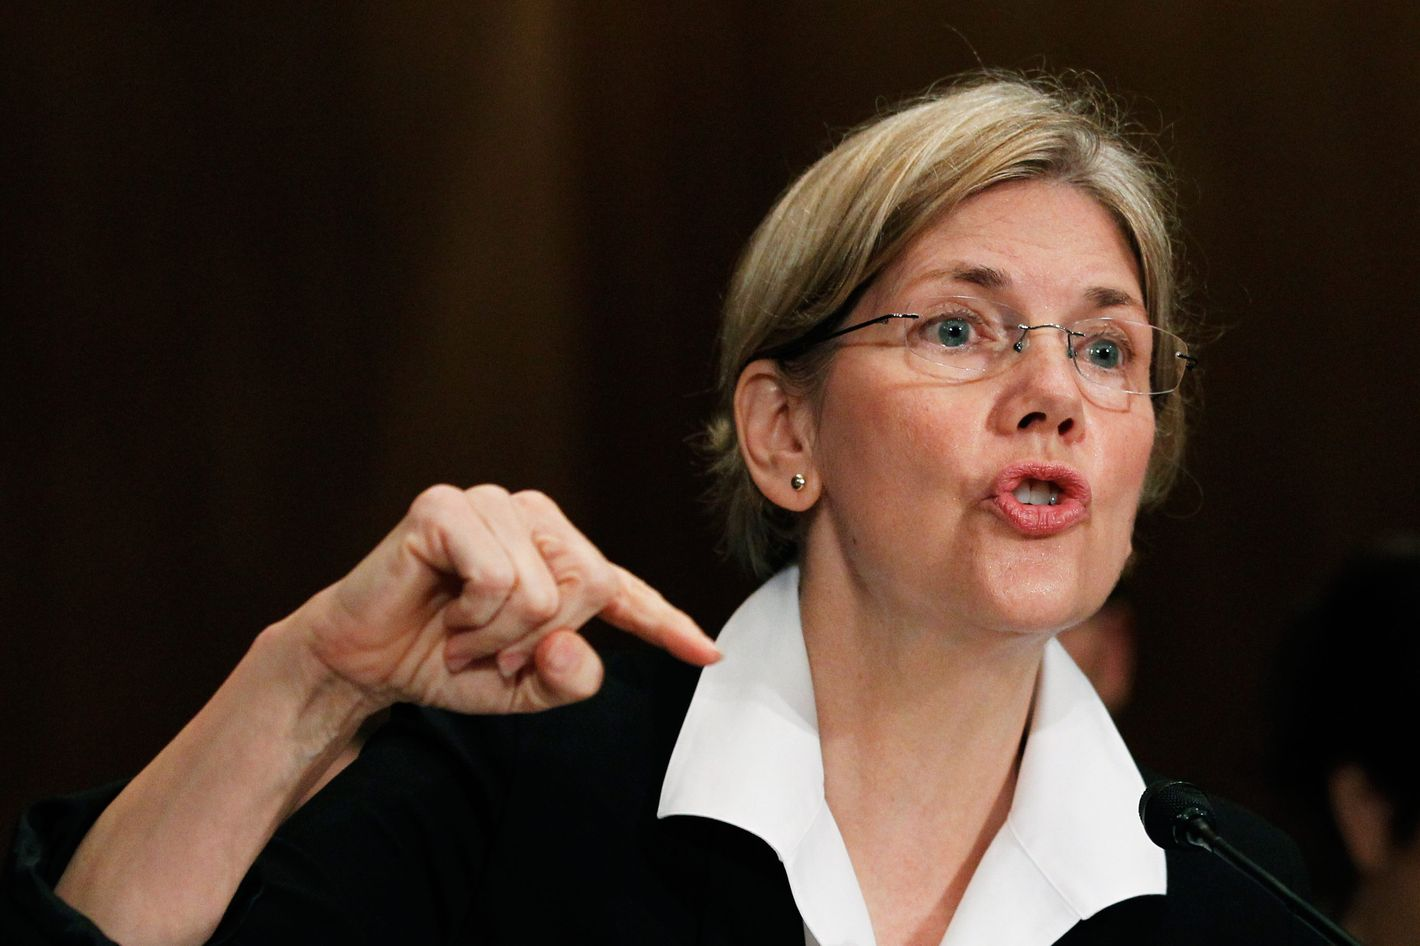 Elizabeth Warren, head of the Congressional Oversight Panel testifies before a Senate Finance Committee hearing to examine the Troubled Asset Relief Program in Washington.